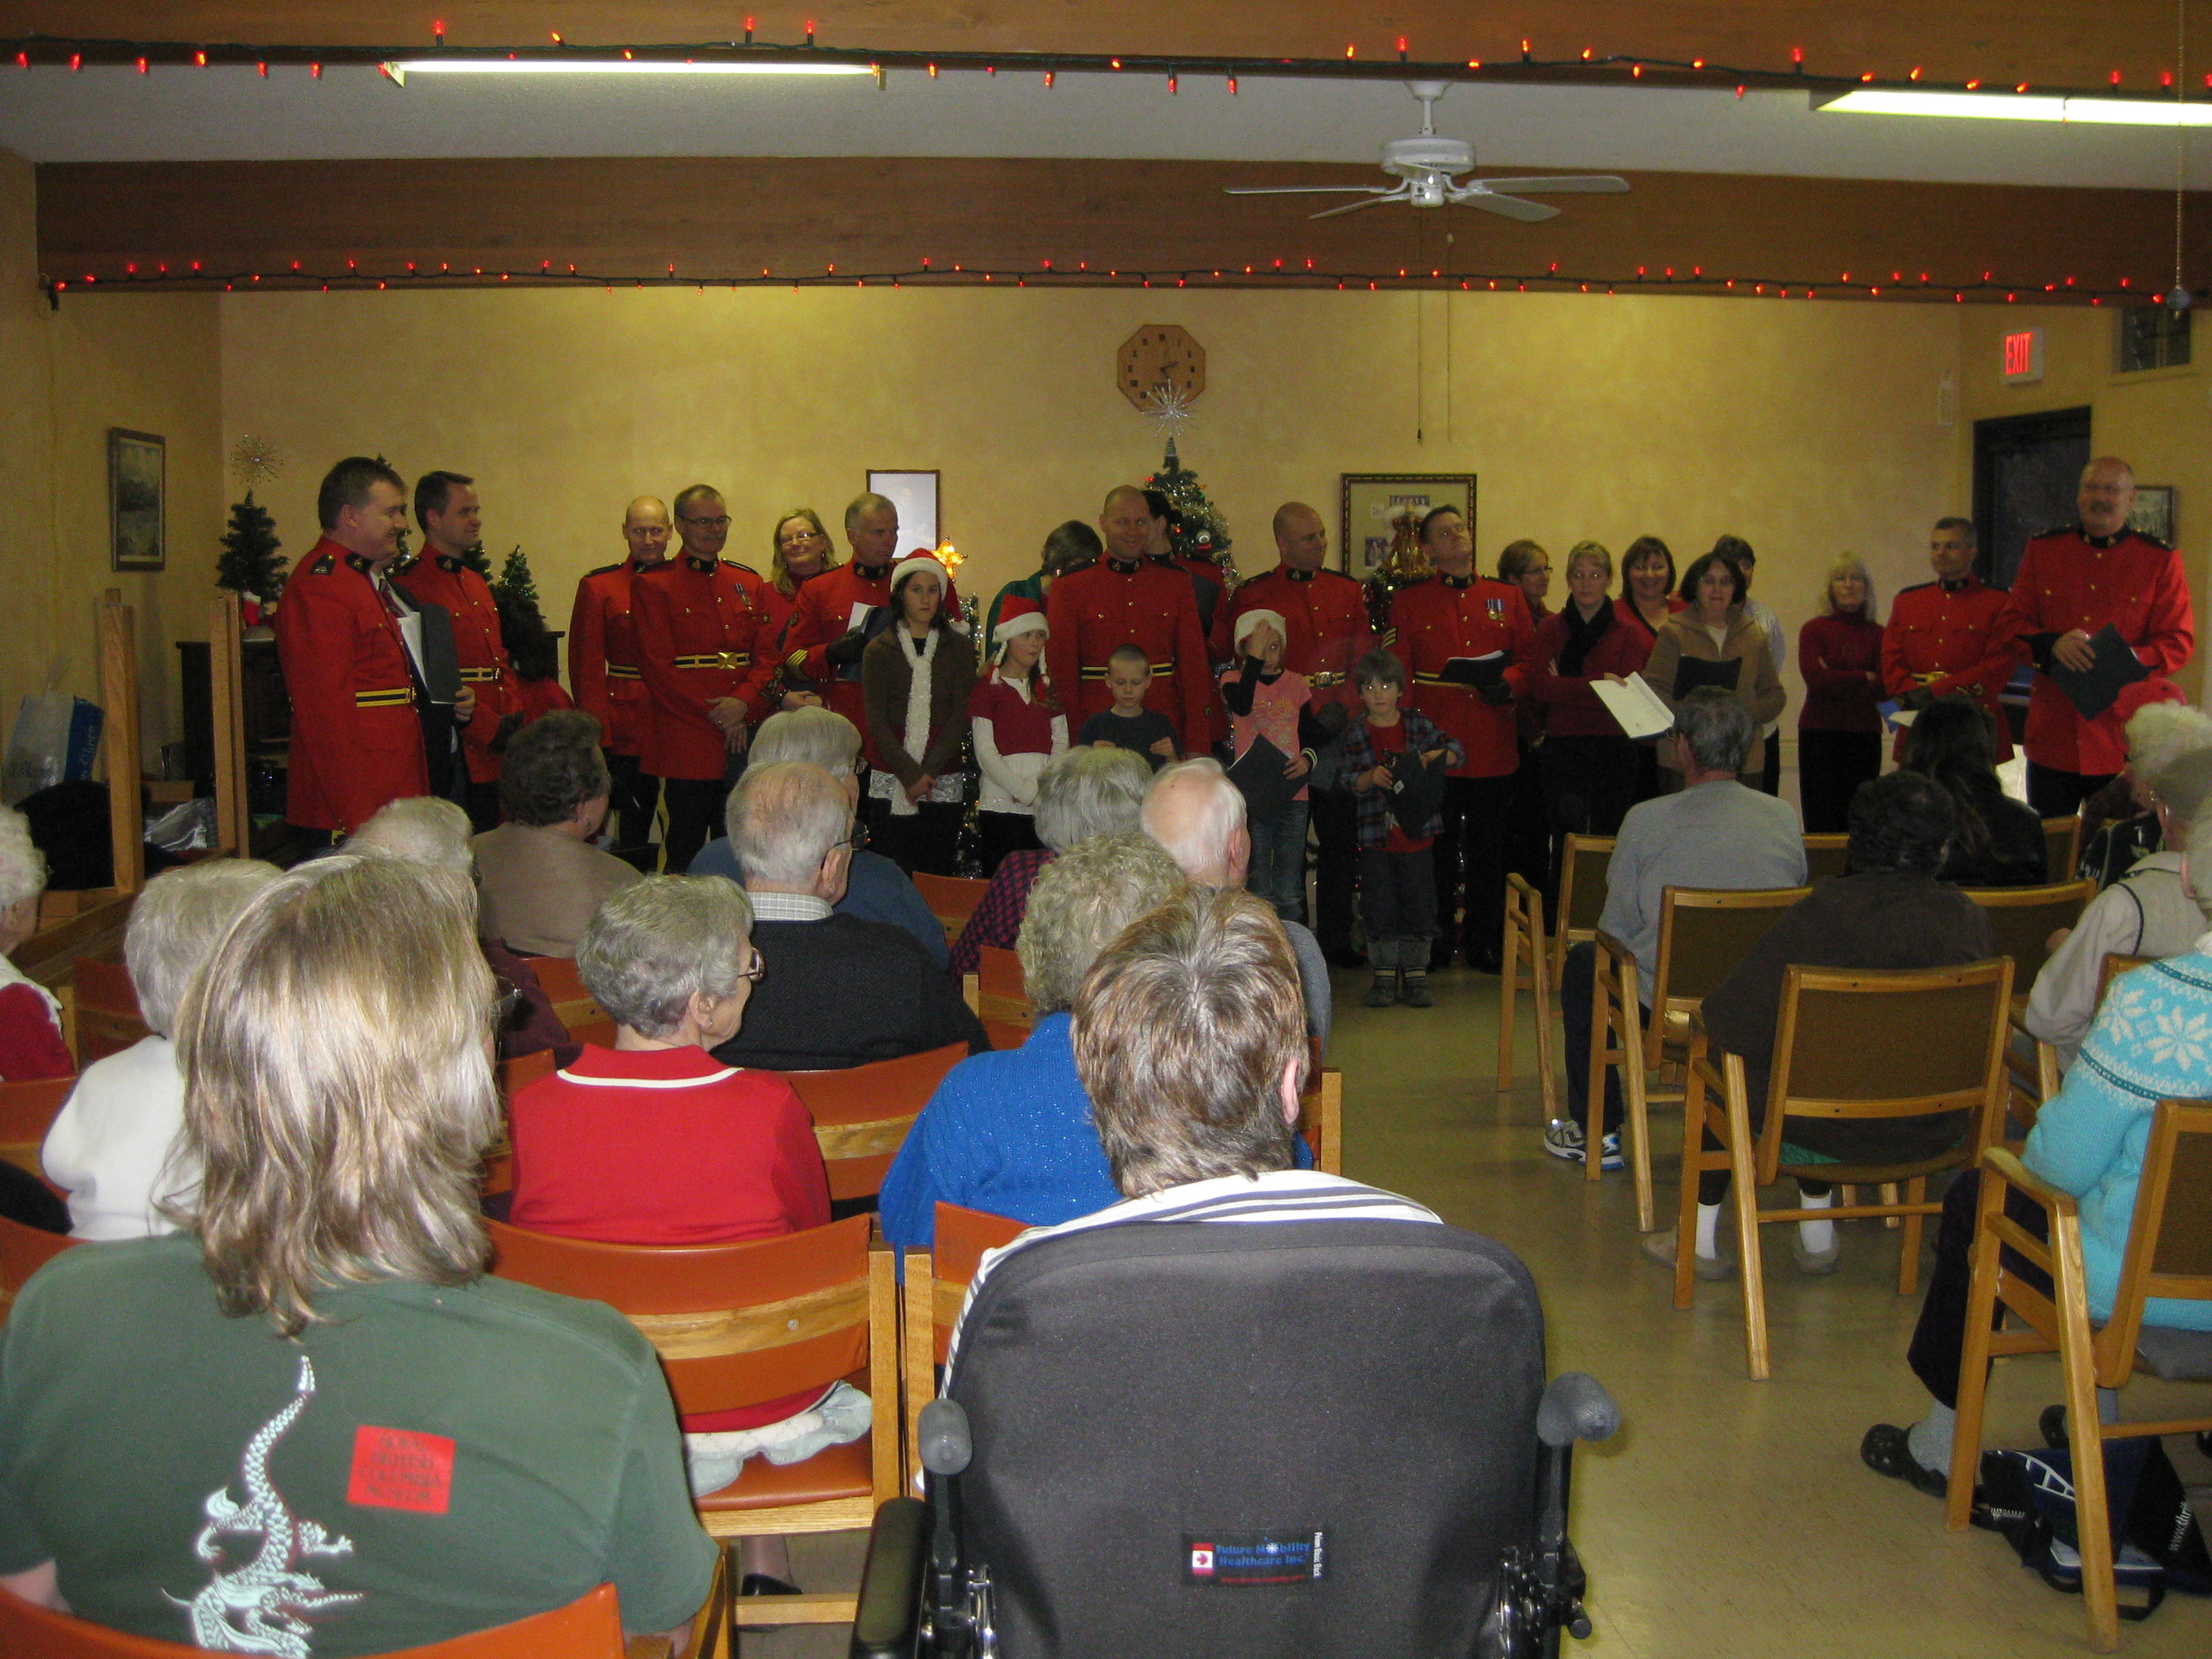 entertainment - Local singers and bands come in and entertain the tenants